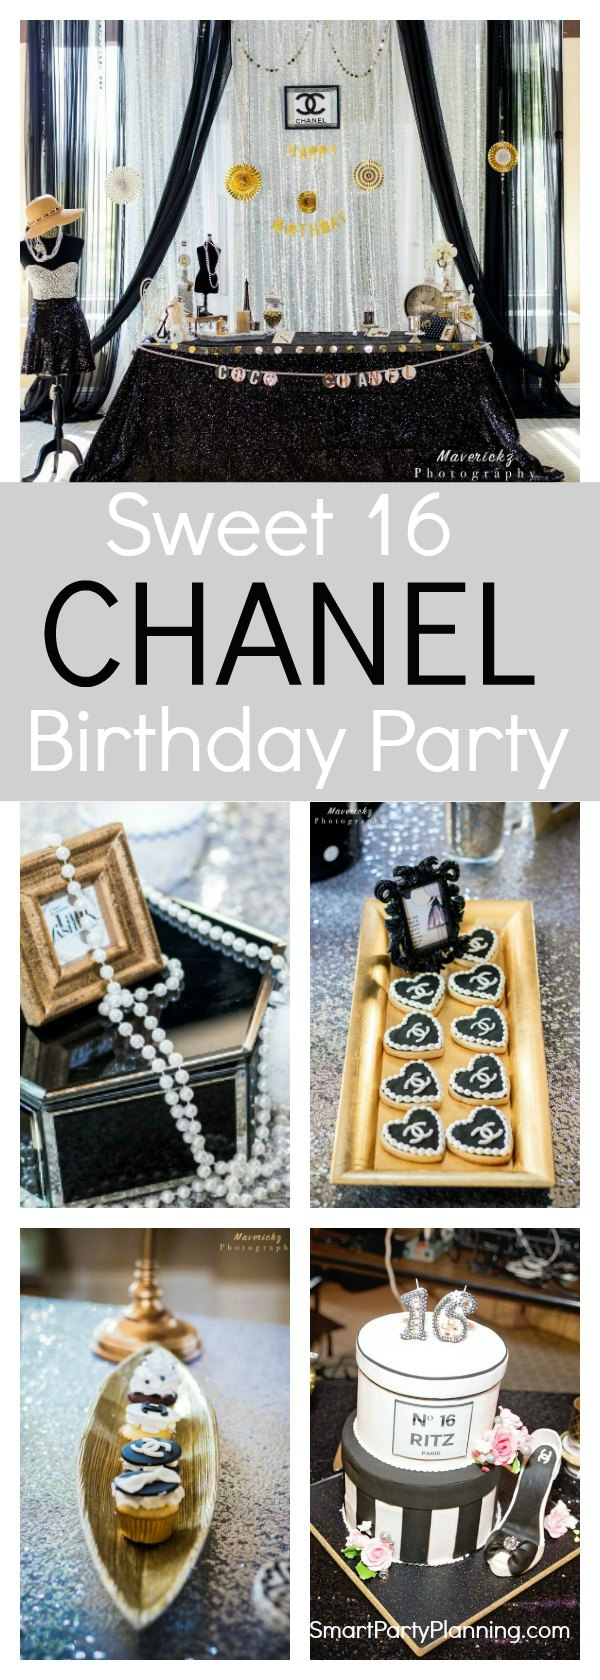 For a stylish and elegant party, look no further than a Chanel birthday party theme. With black and white party decorations, this is a theme that will delight the young and old.  With an element of class and sophistication it is perfect for many party themes including a Sweet 16 party, a 30th birthday or even an engagement party.  Pick some stand out feature centerpieces for the party decor, grab some pearls and dress to impress.